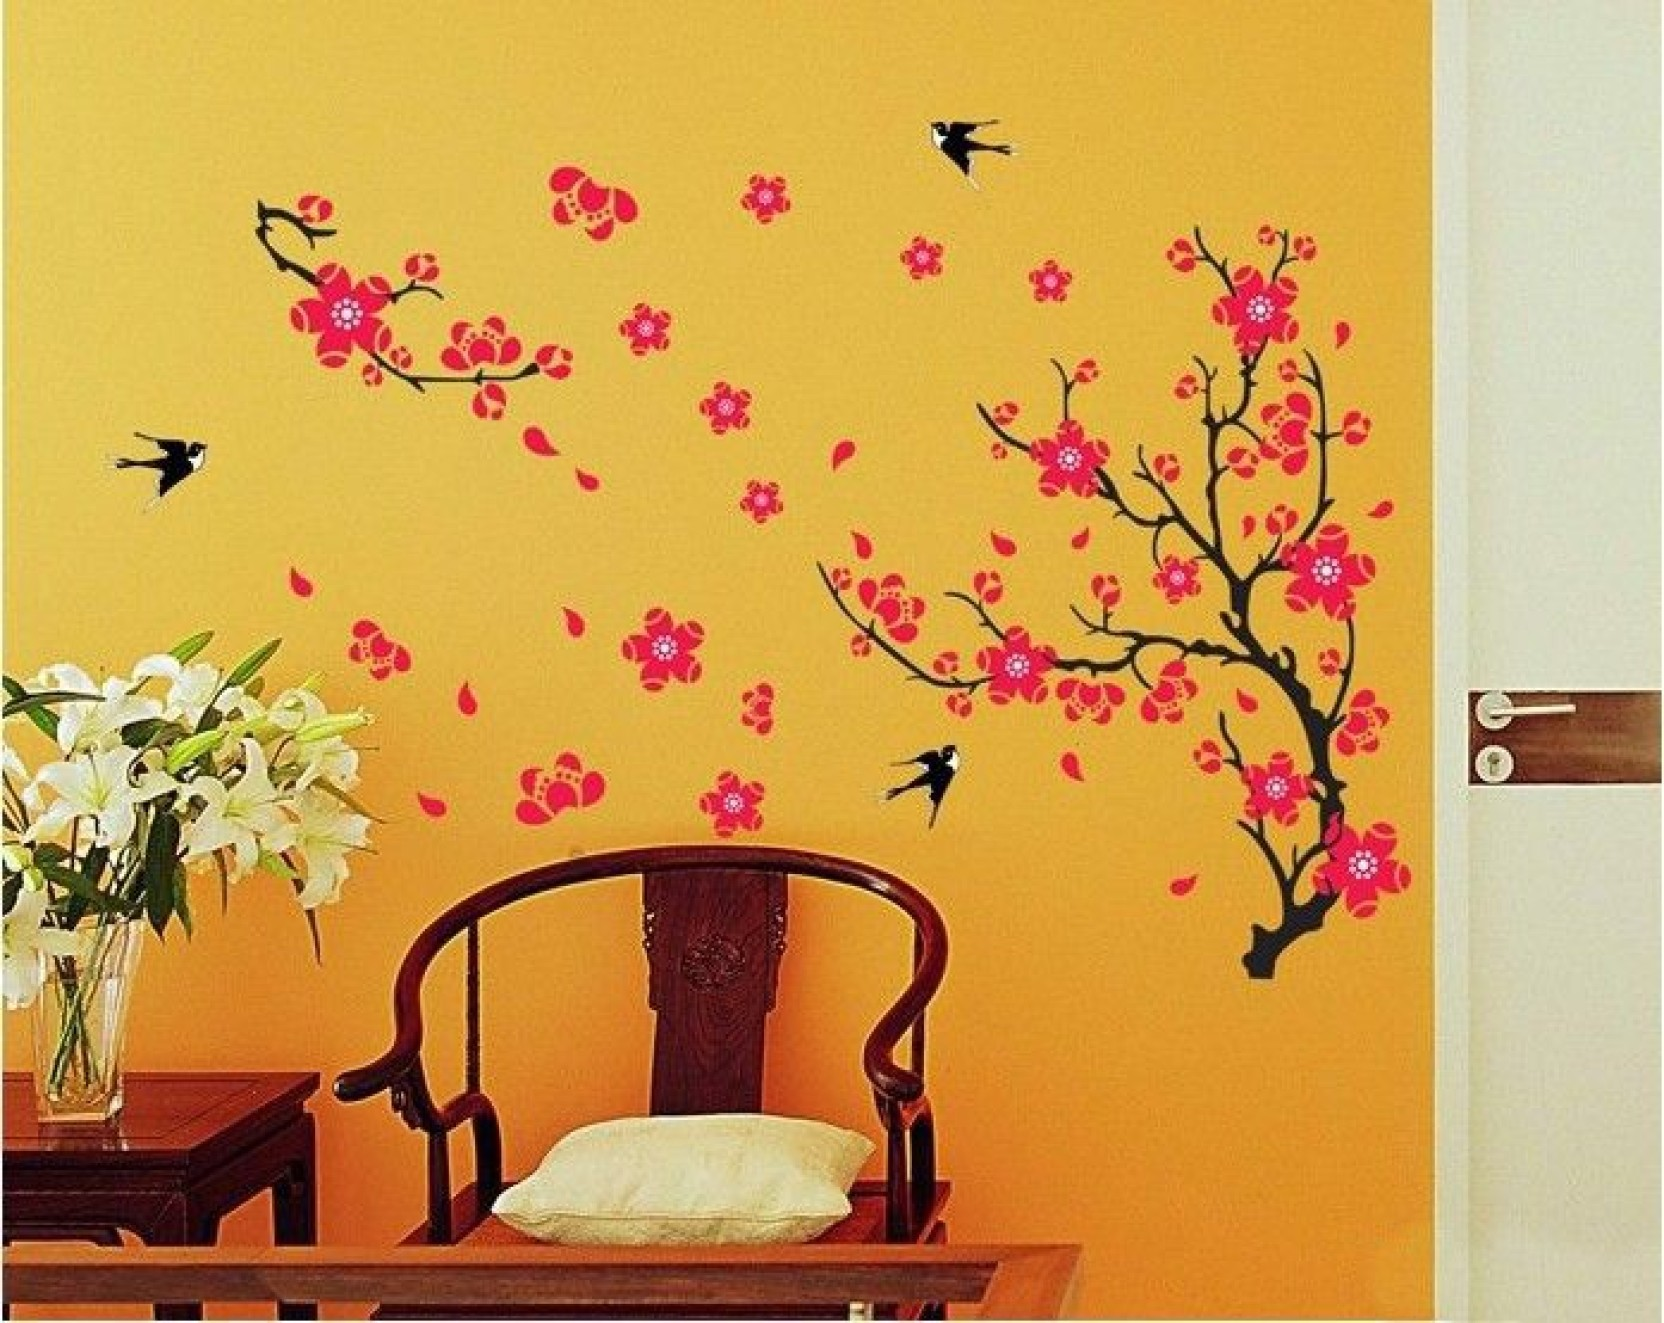 Aquire Extra Large PVC Vinyl Sticker Price in India - Buy Aquire ...